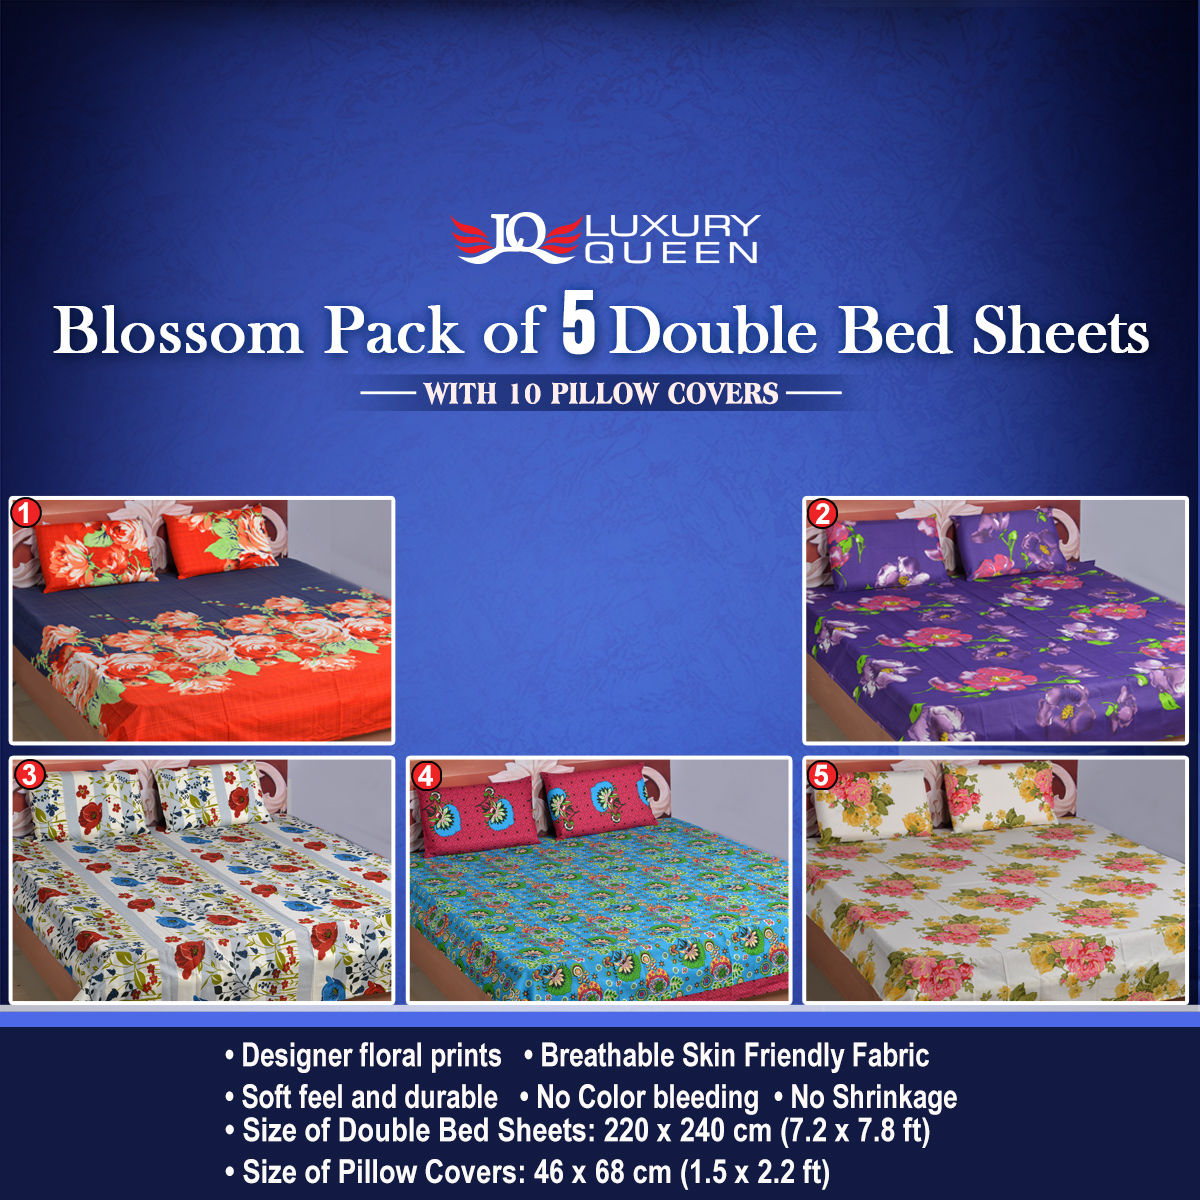 Hot deals store buy blossom pack of 5 double bedsheets for Living room ideas trackid sp 006